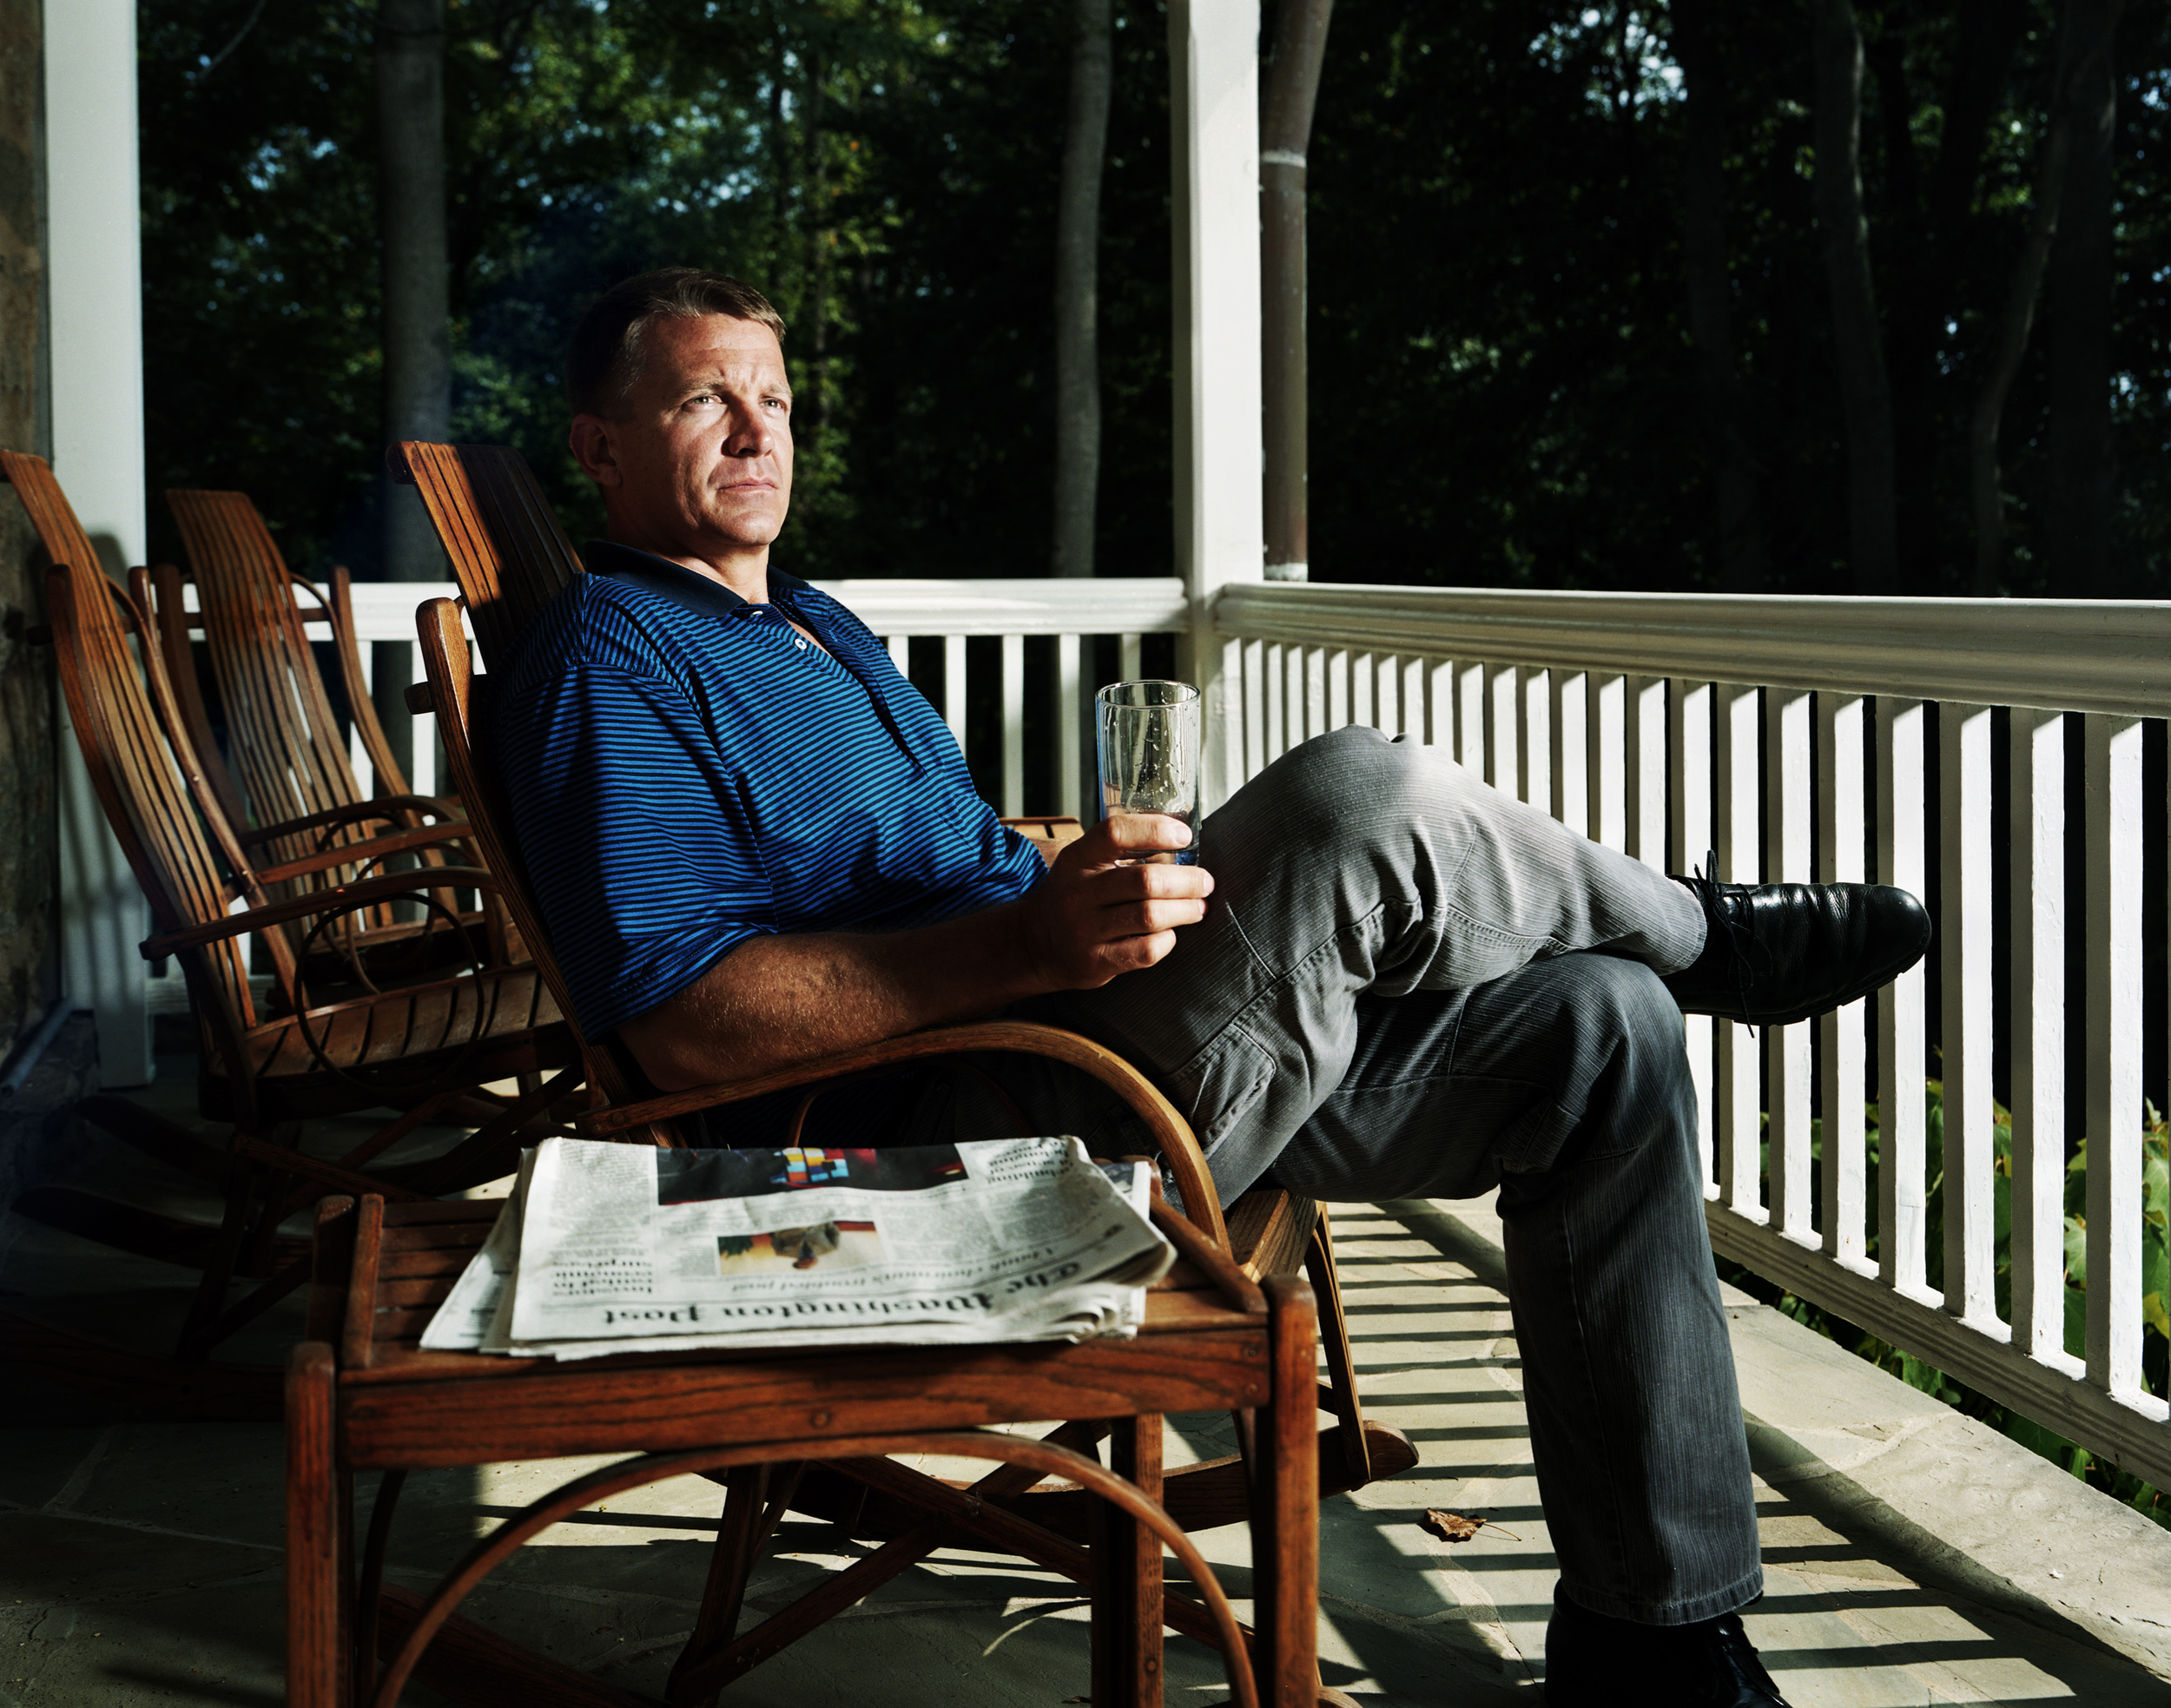 Erik Prince - founder and former owner of Blackwater USA - Fairfax County, VA